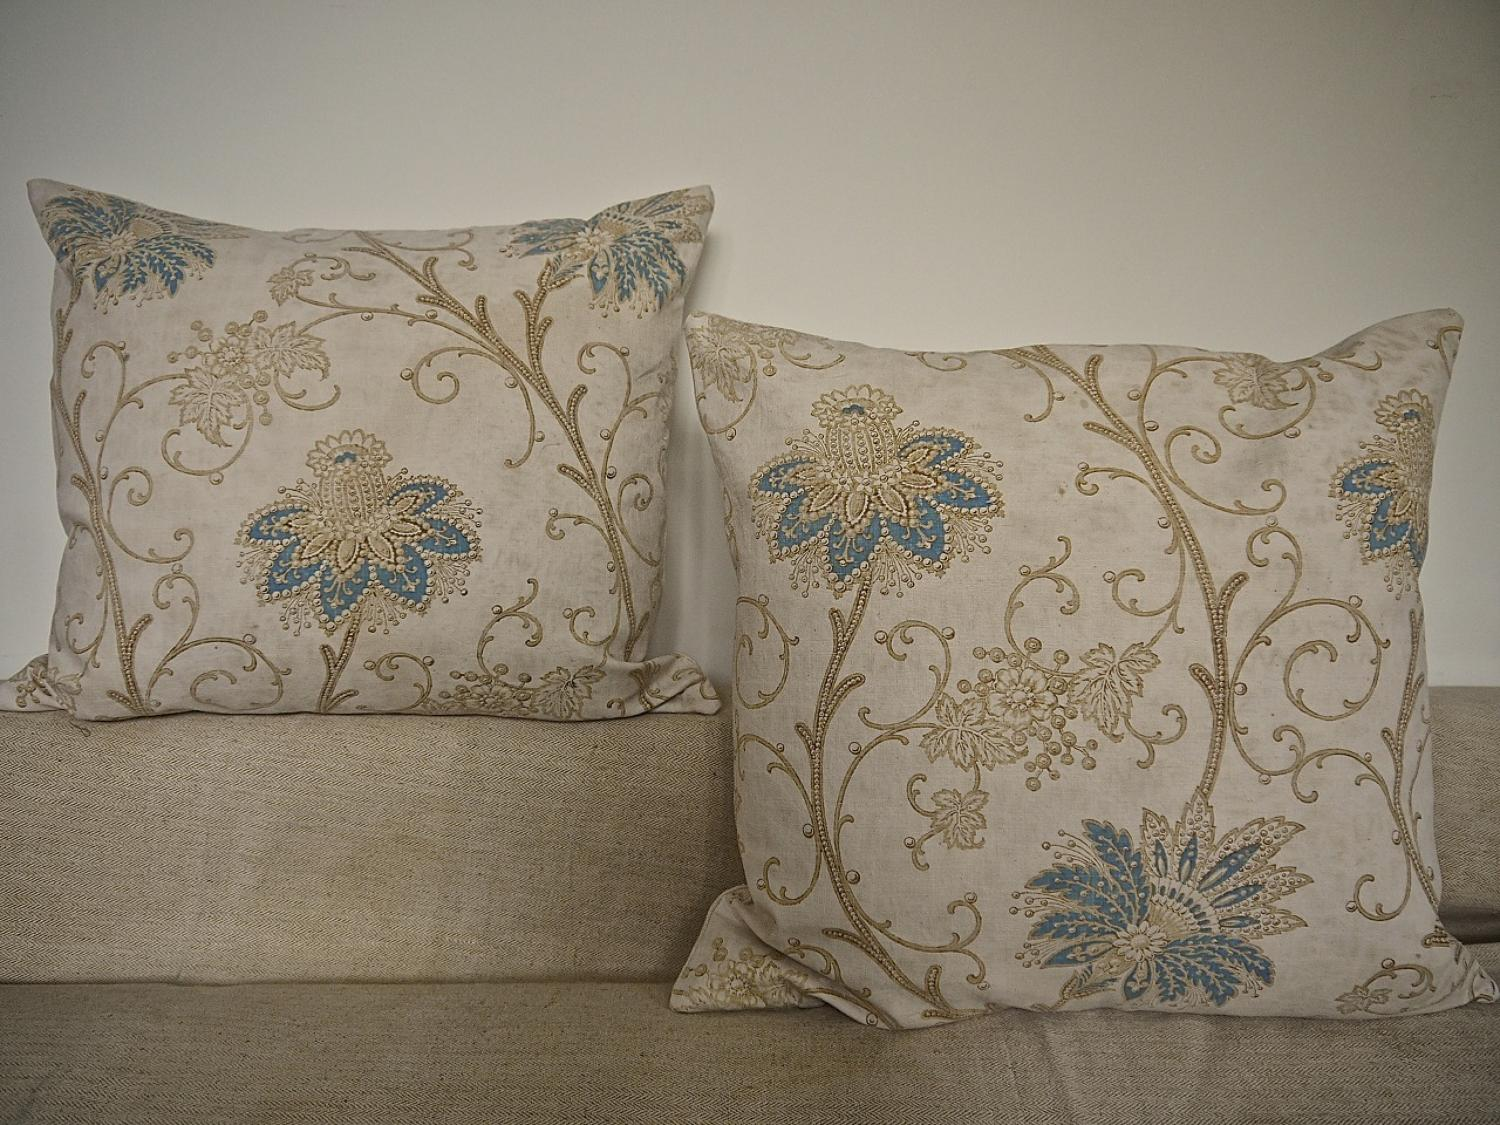 Pair of 19th century French Indienne cotton cushions